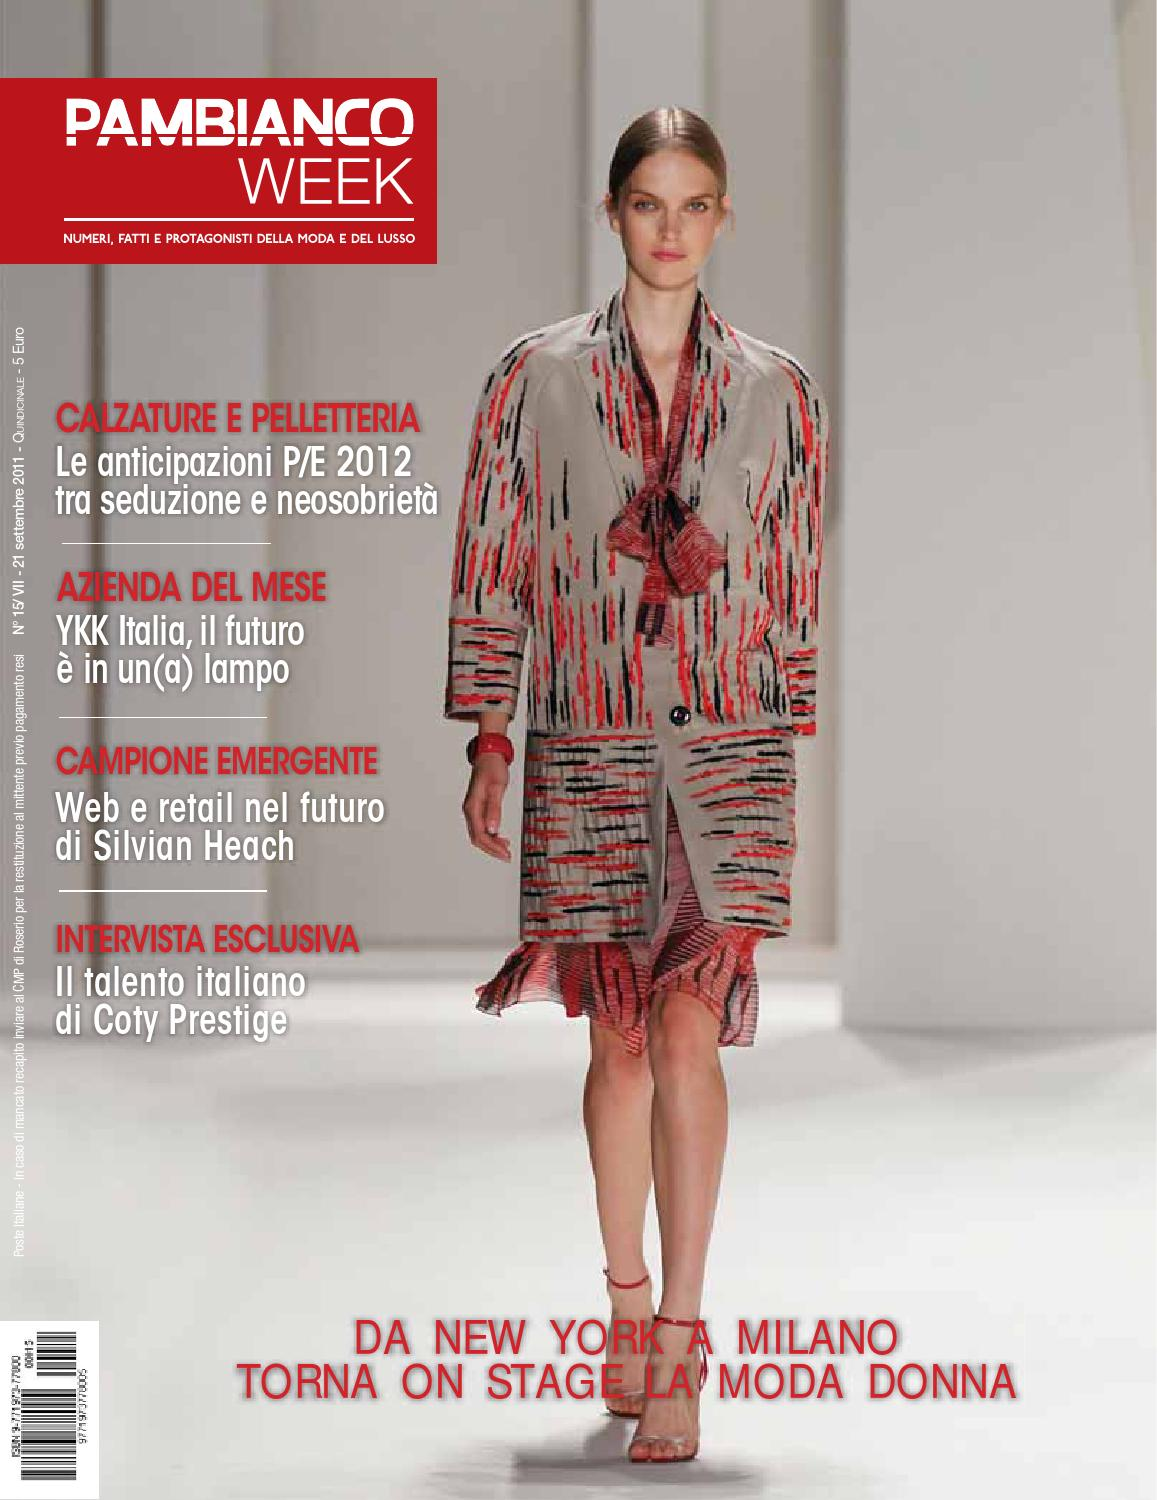 Pambianco WEEK N.15 VII by Pambianconews - issuu 583741511c0